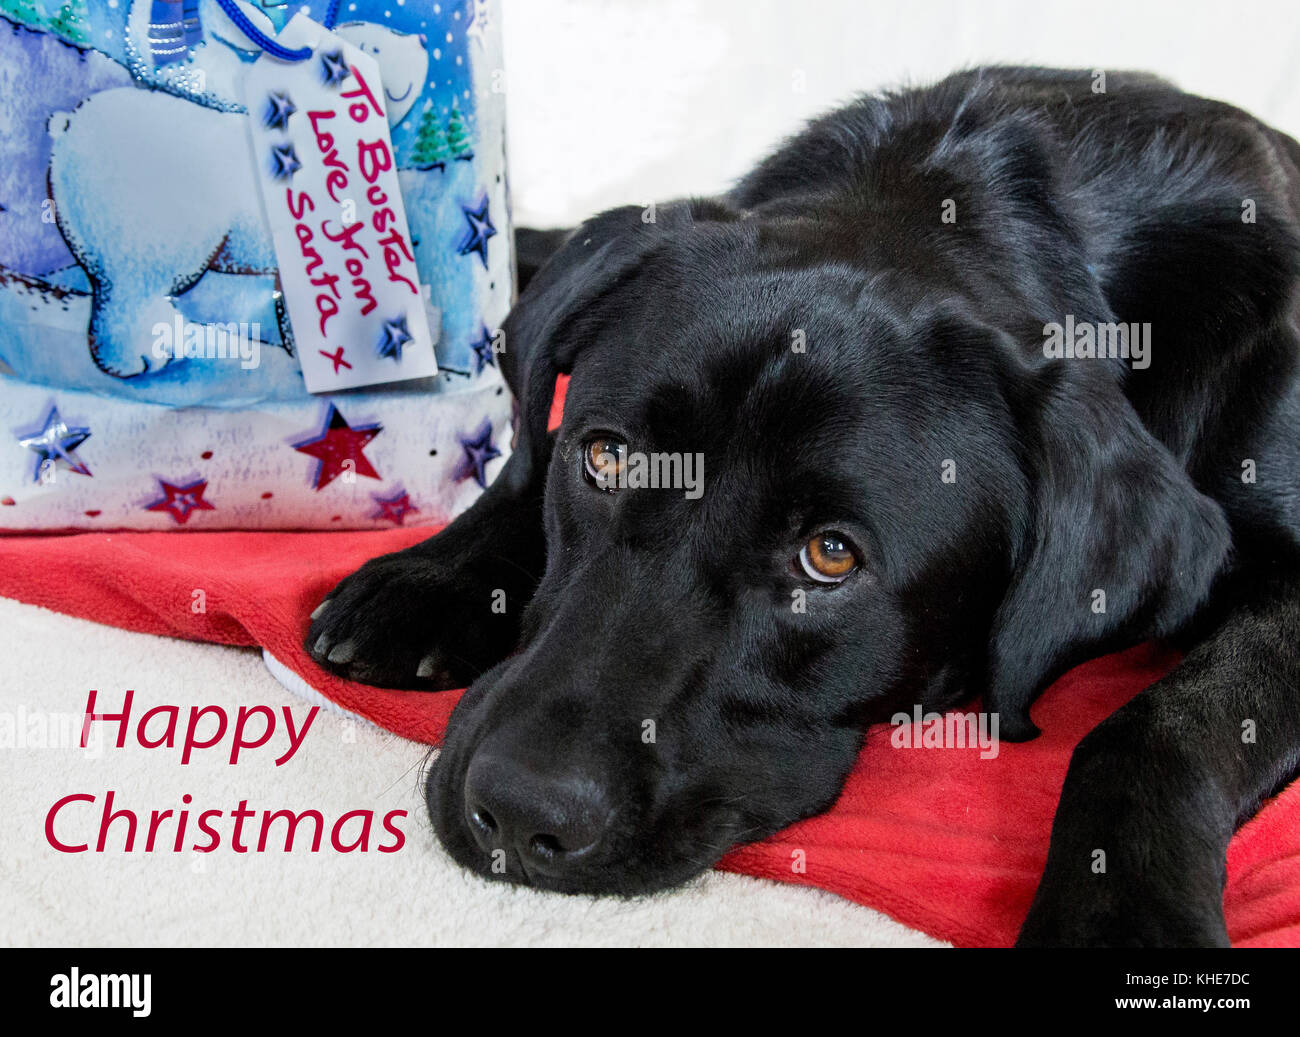 A black labrador is lying next to a Christmas gift from Santa tagged with his name. - Stock Image